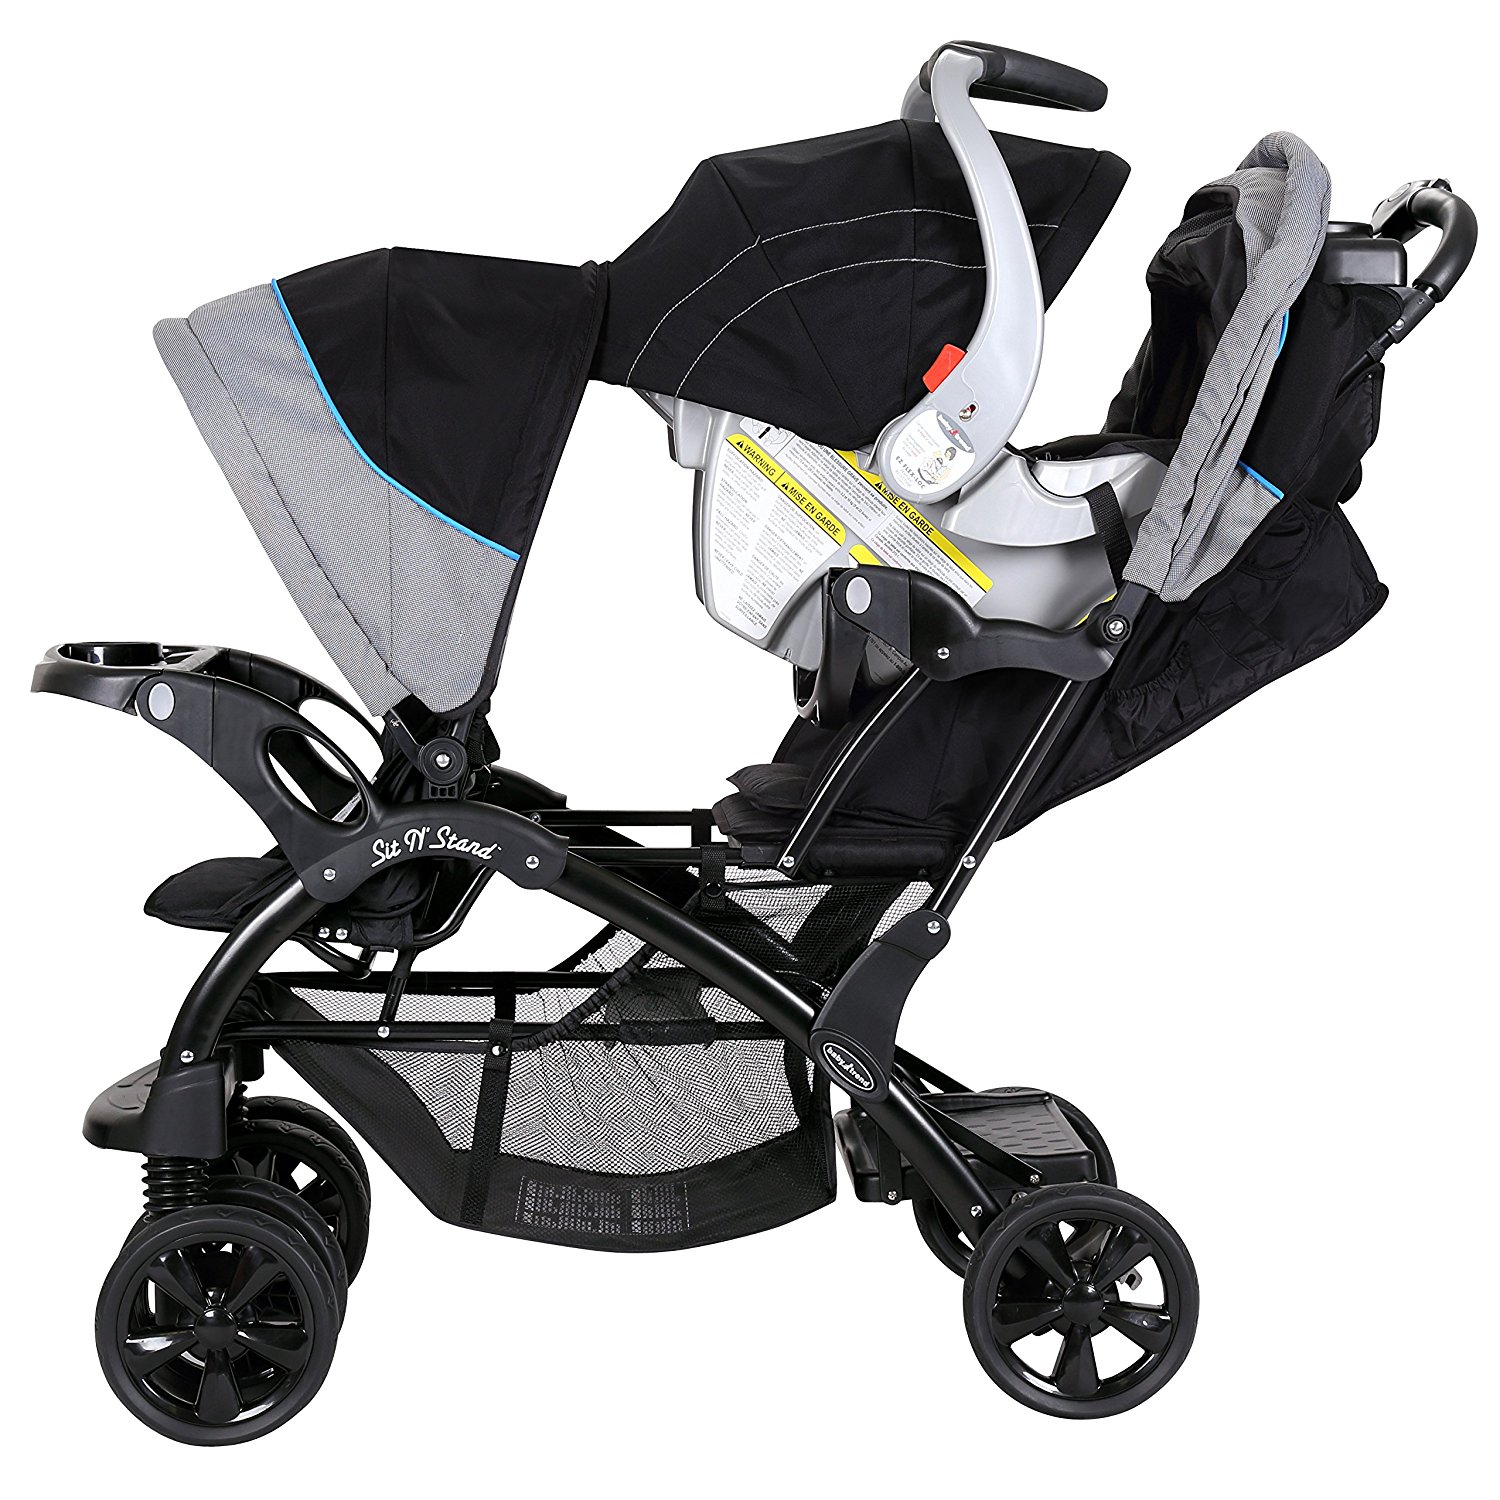 Details Sur Baby Trend Double Ride Sit N Stand Toddler And Baby Stroller Millennium Blue